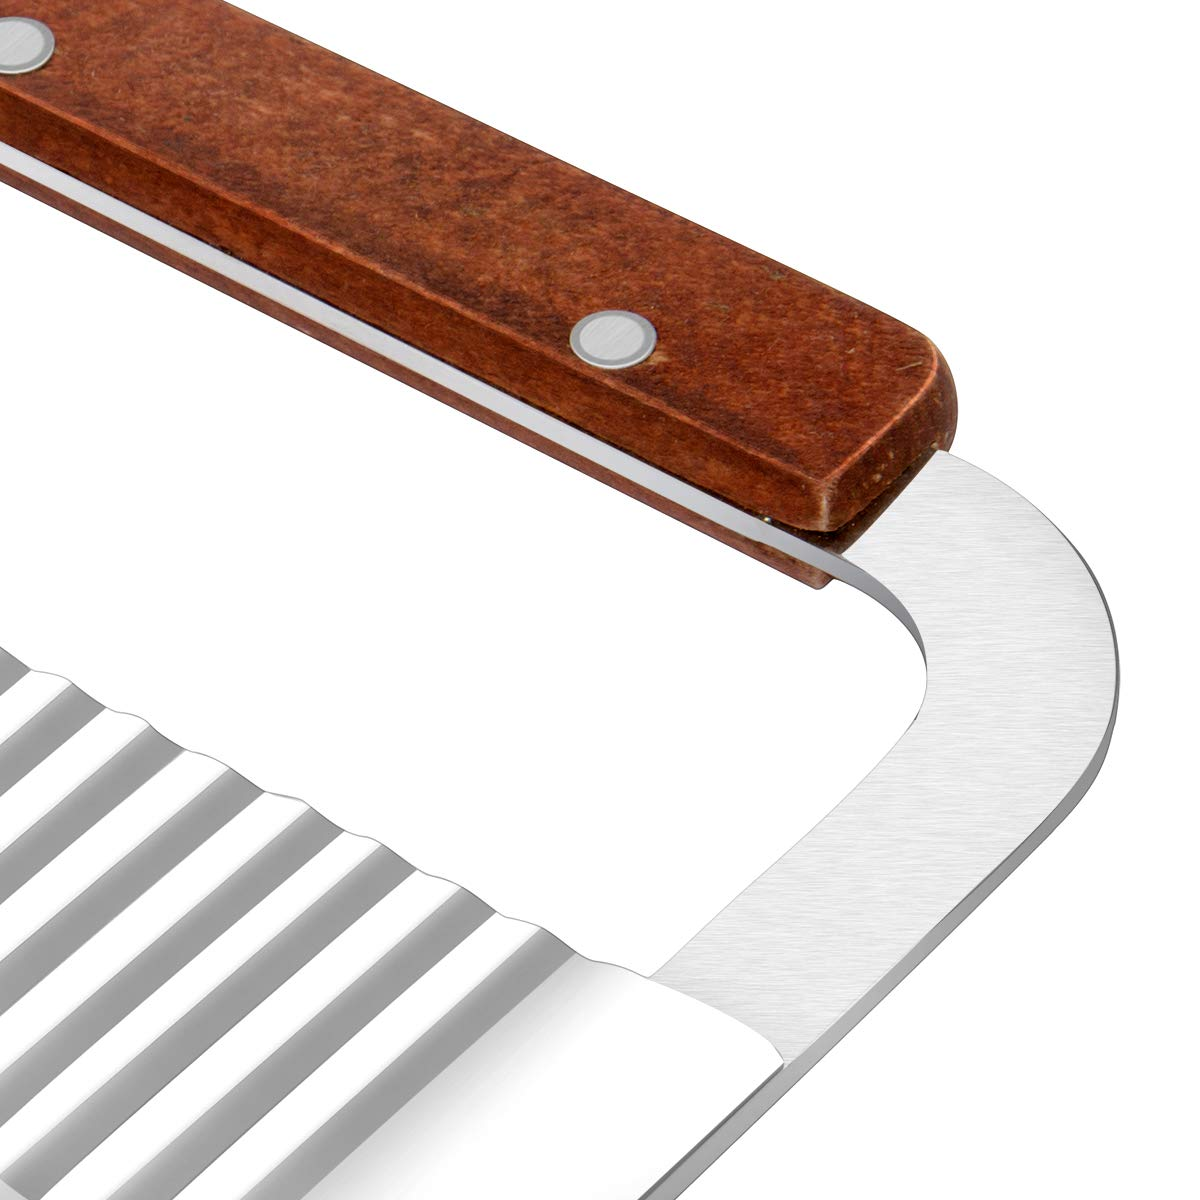 Wave Crinkle Cutter, Wood Handle Stainless Steel Blade 7-Inch, 2 pack